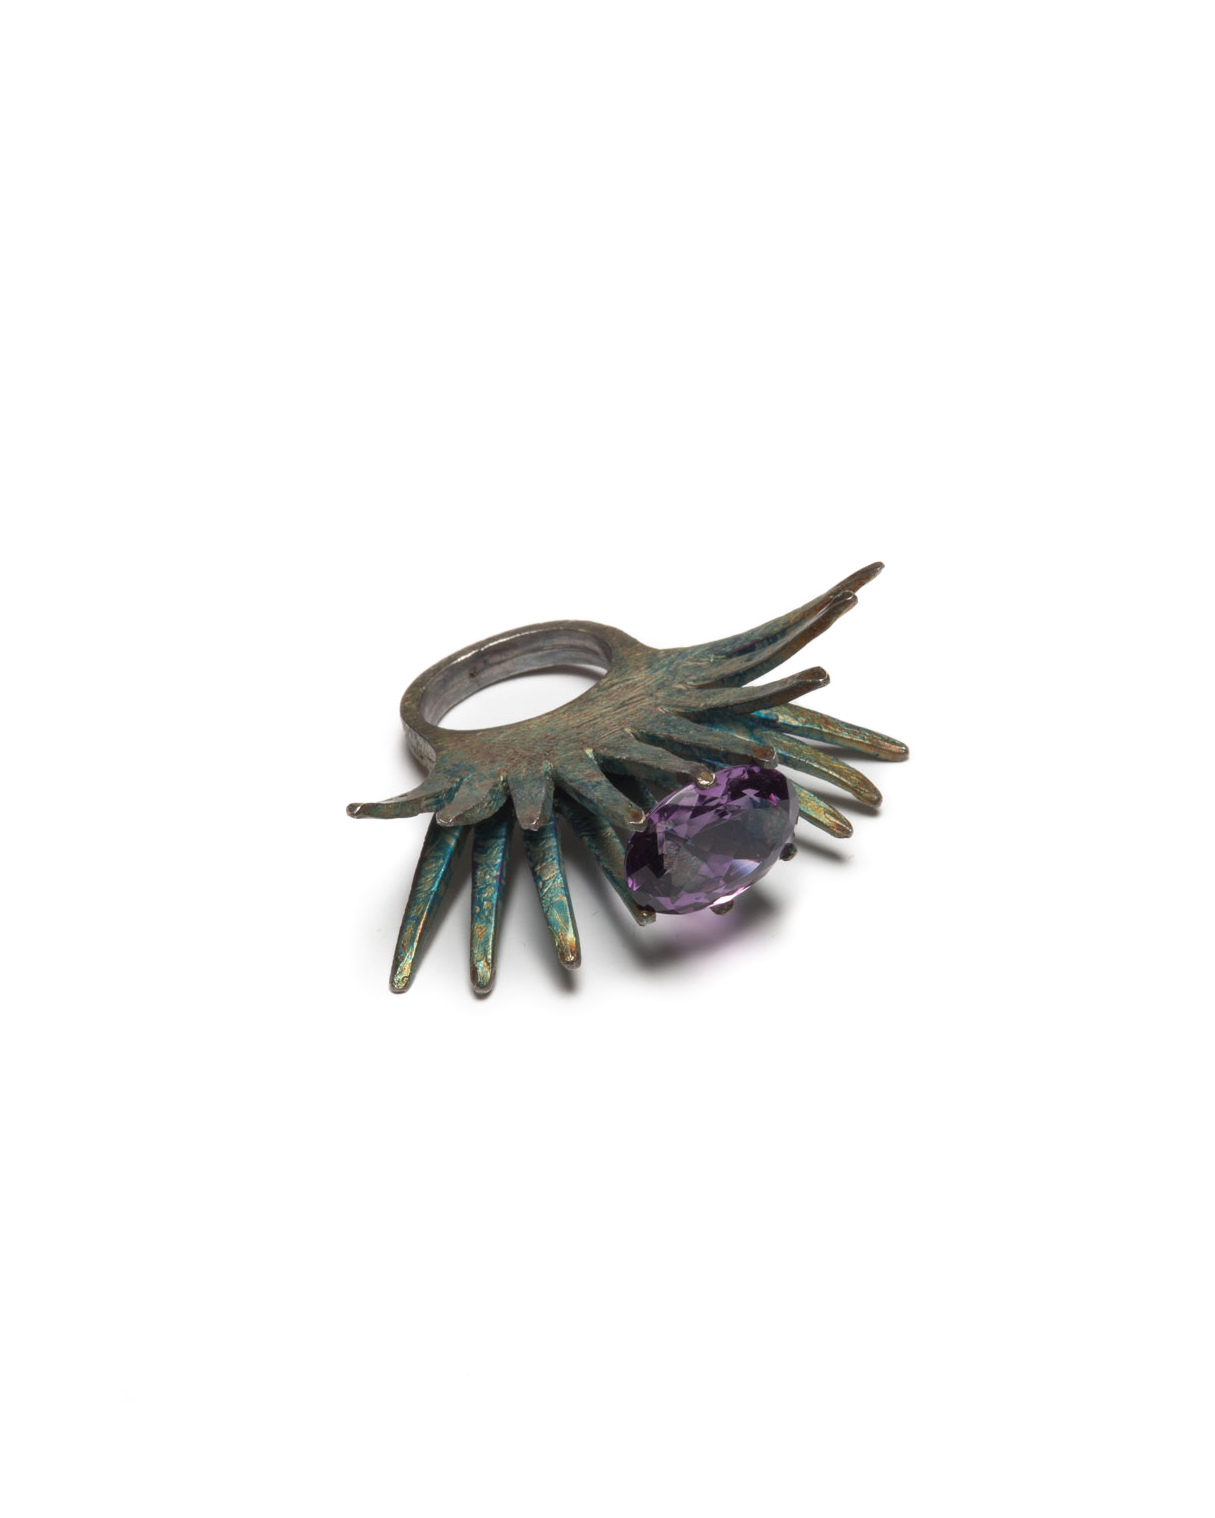 Winfried Krüger, untitled, 1994, ring; oxidised silver, amethyst, 47 x 55 mm, €1700